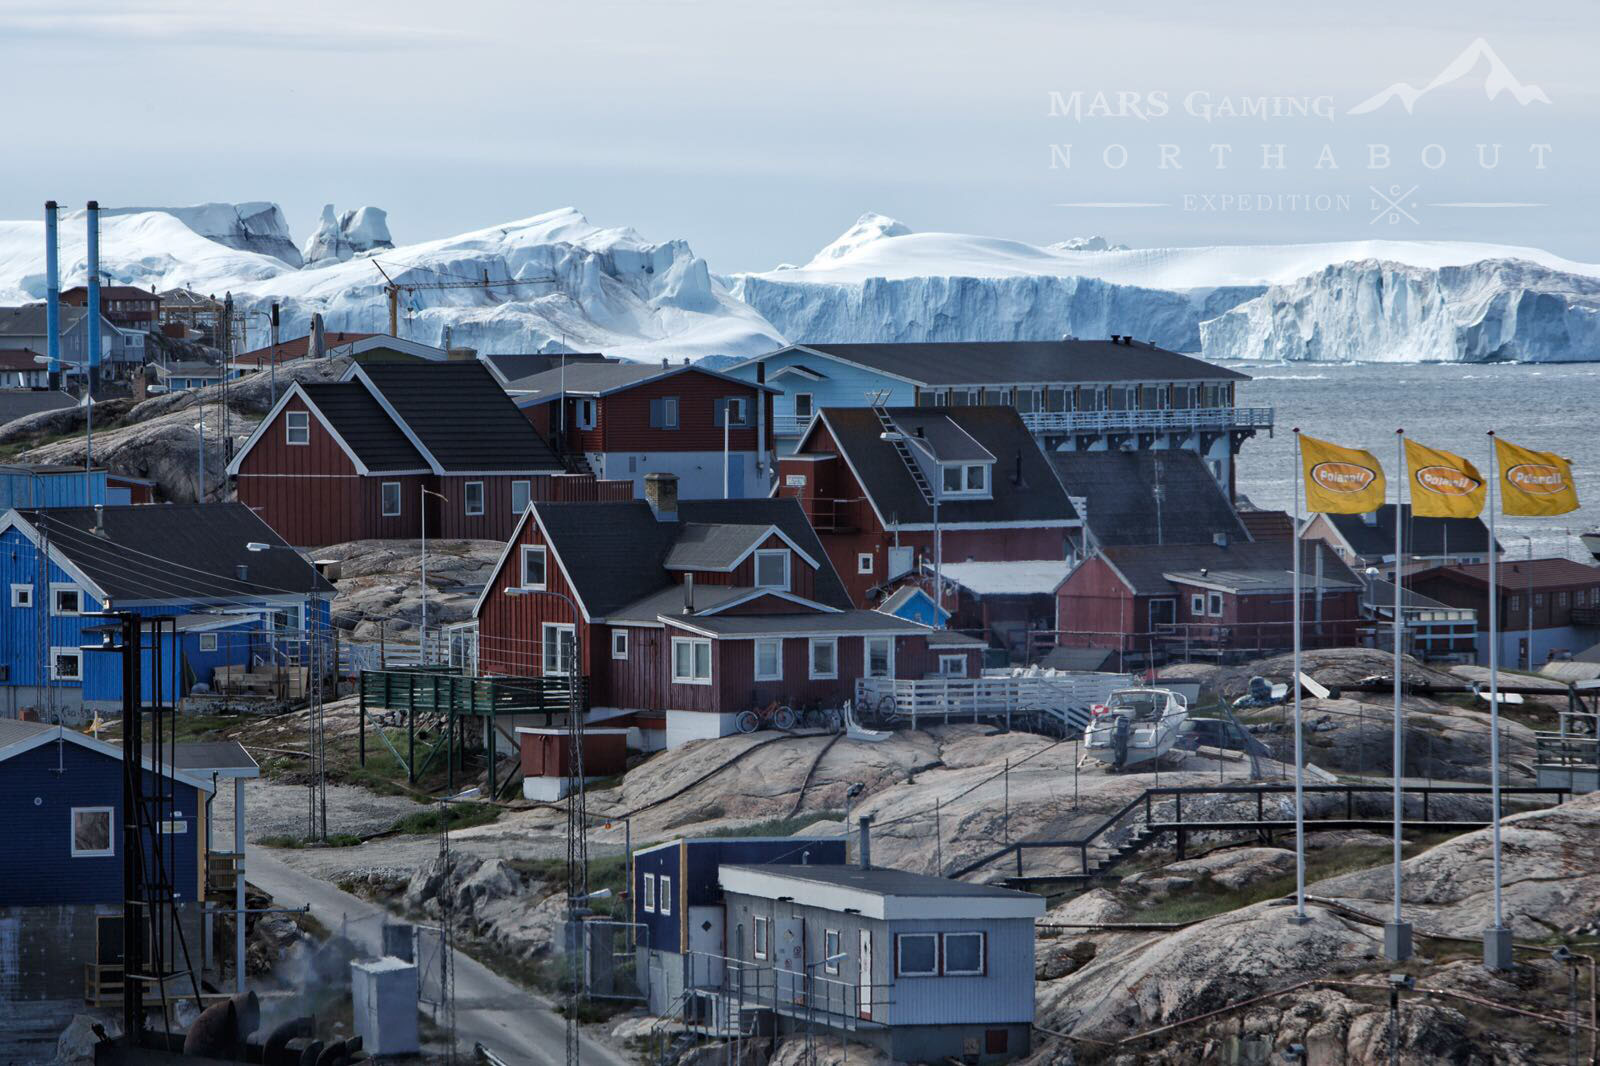 Ilulissat Mars Gaming Northabout Expedition